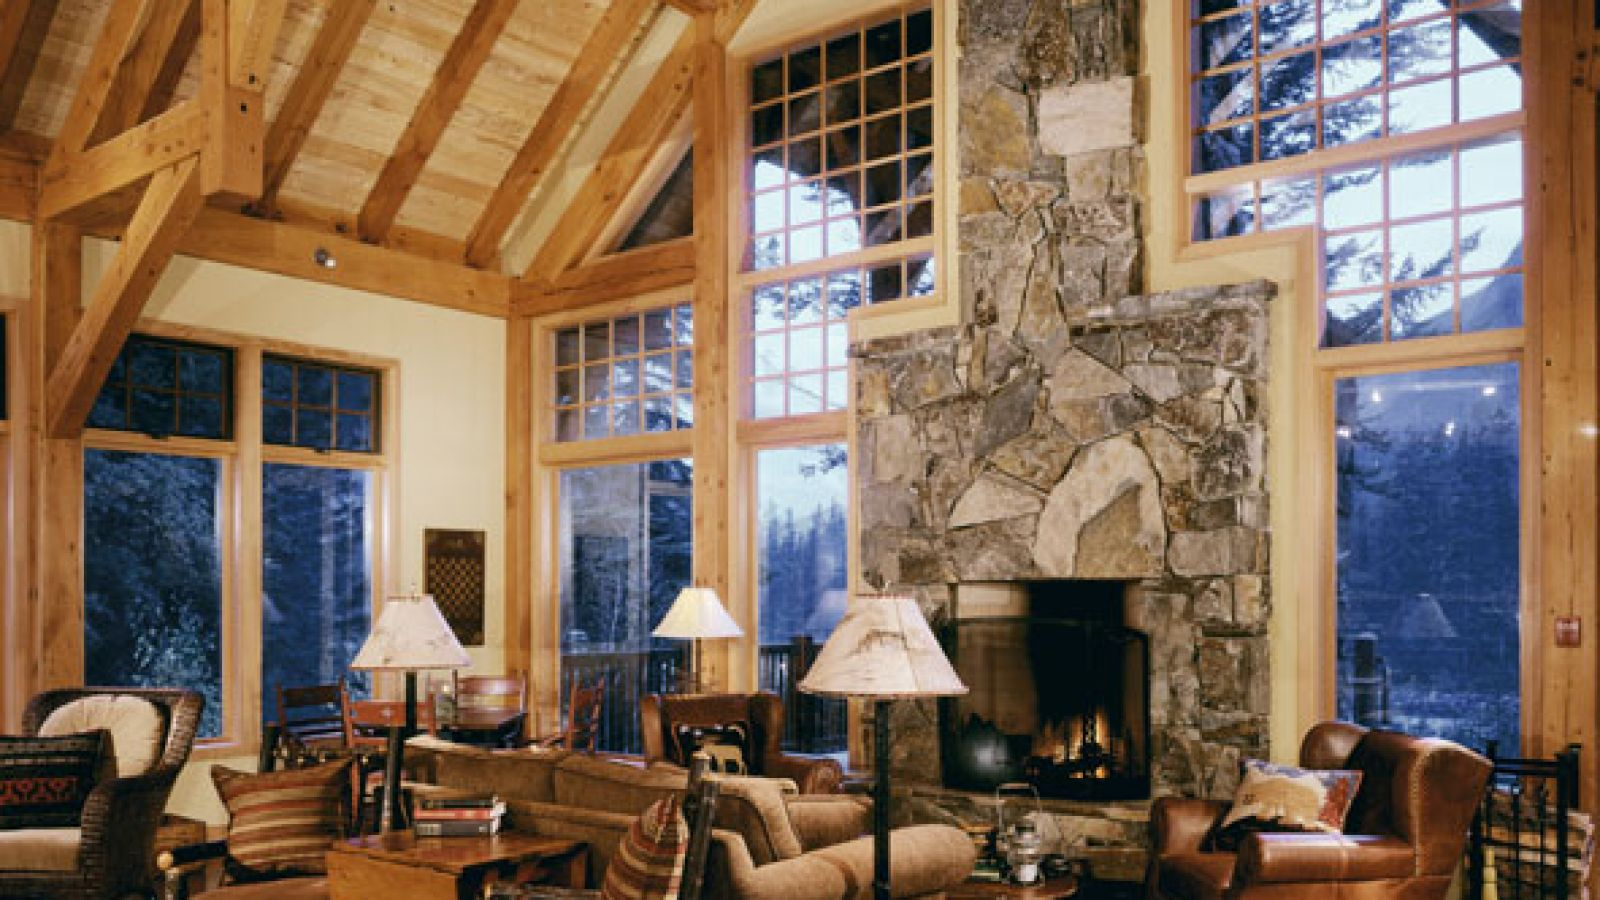 The lodge's great room.